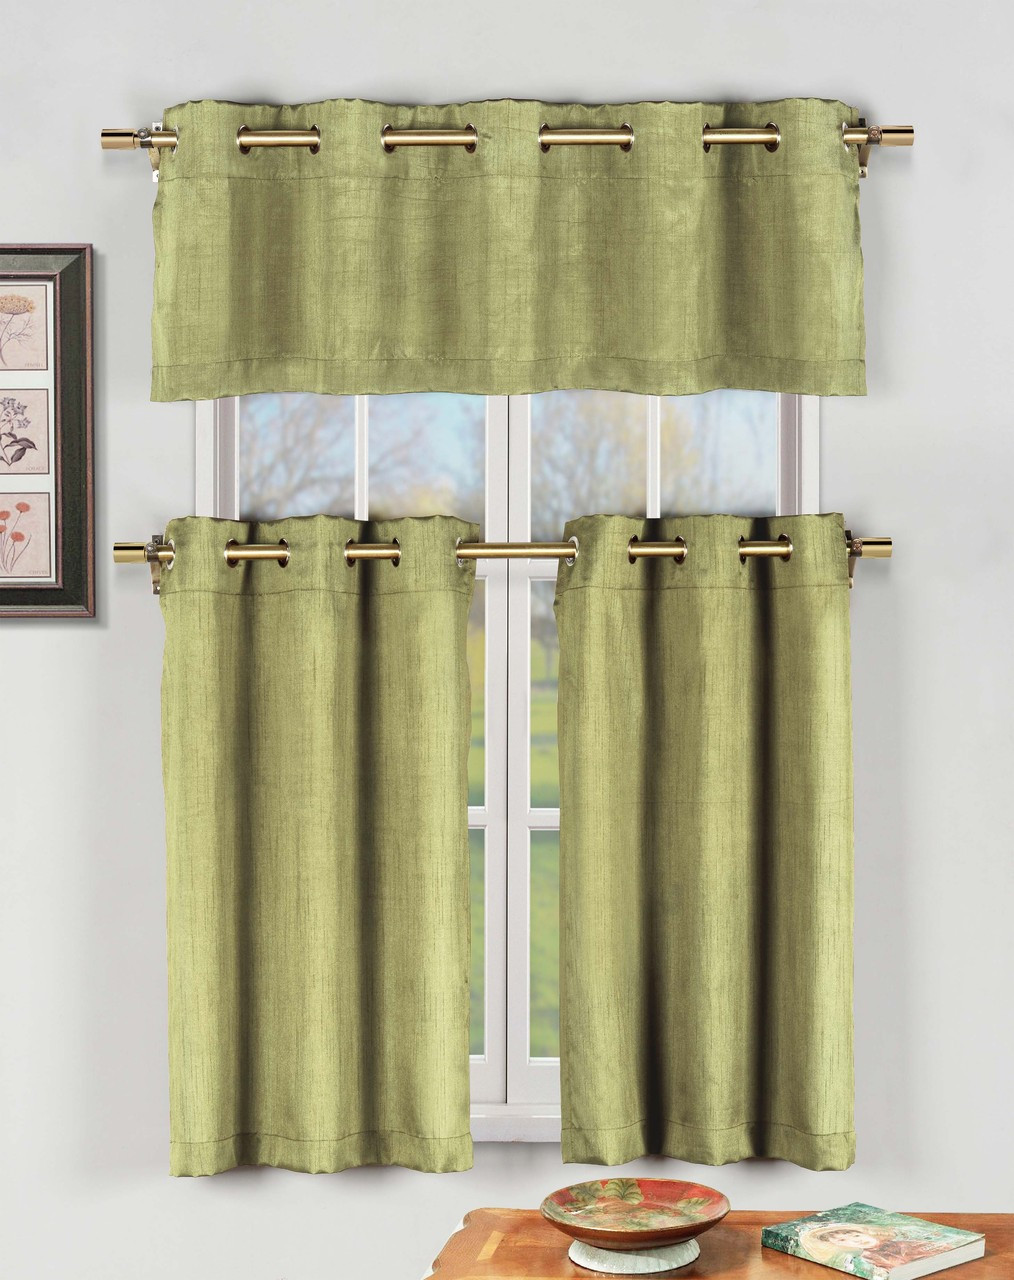 Sage Green 3 Pc Kitchen Window Curtain Set with Silver Metal Grommets: 1  Valance, 2 Tier Panels